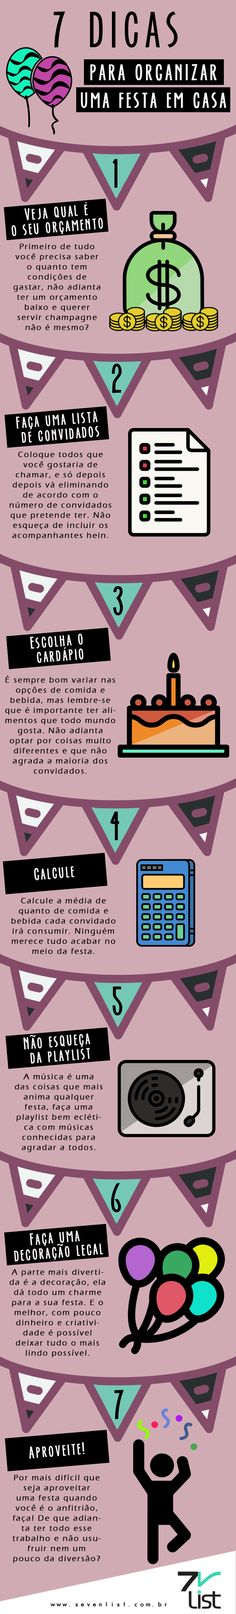 #Infográfico #Infographic #Design #Home #Party #DIY #Festa #Casa #Orçamento…